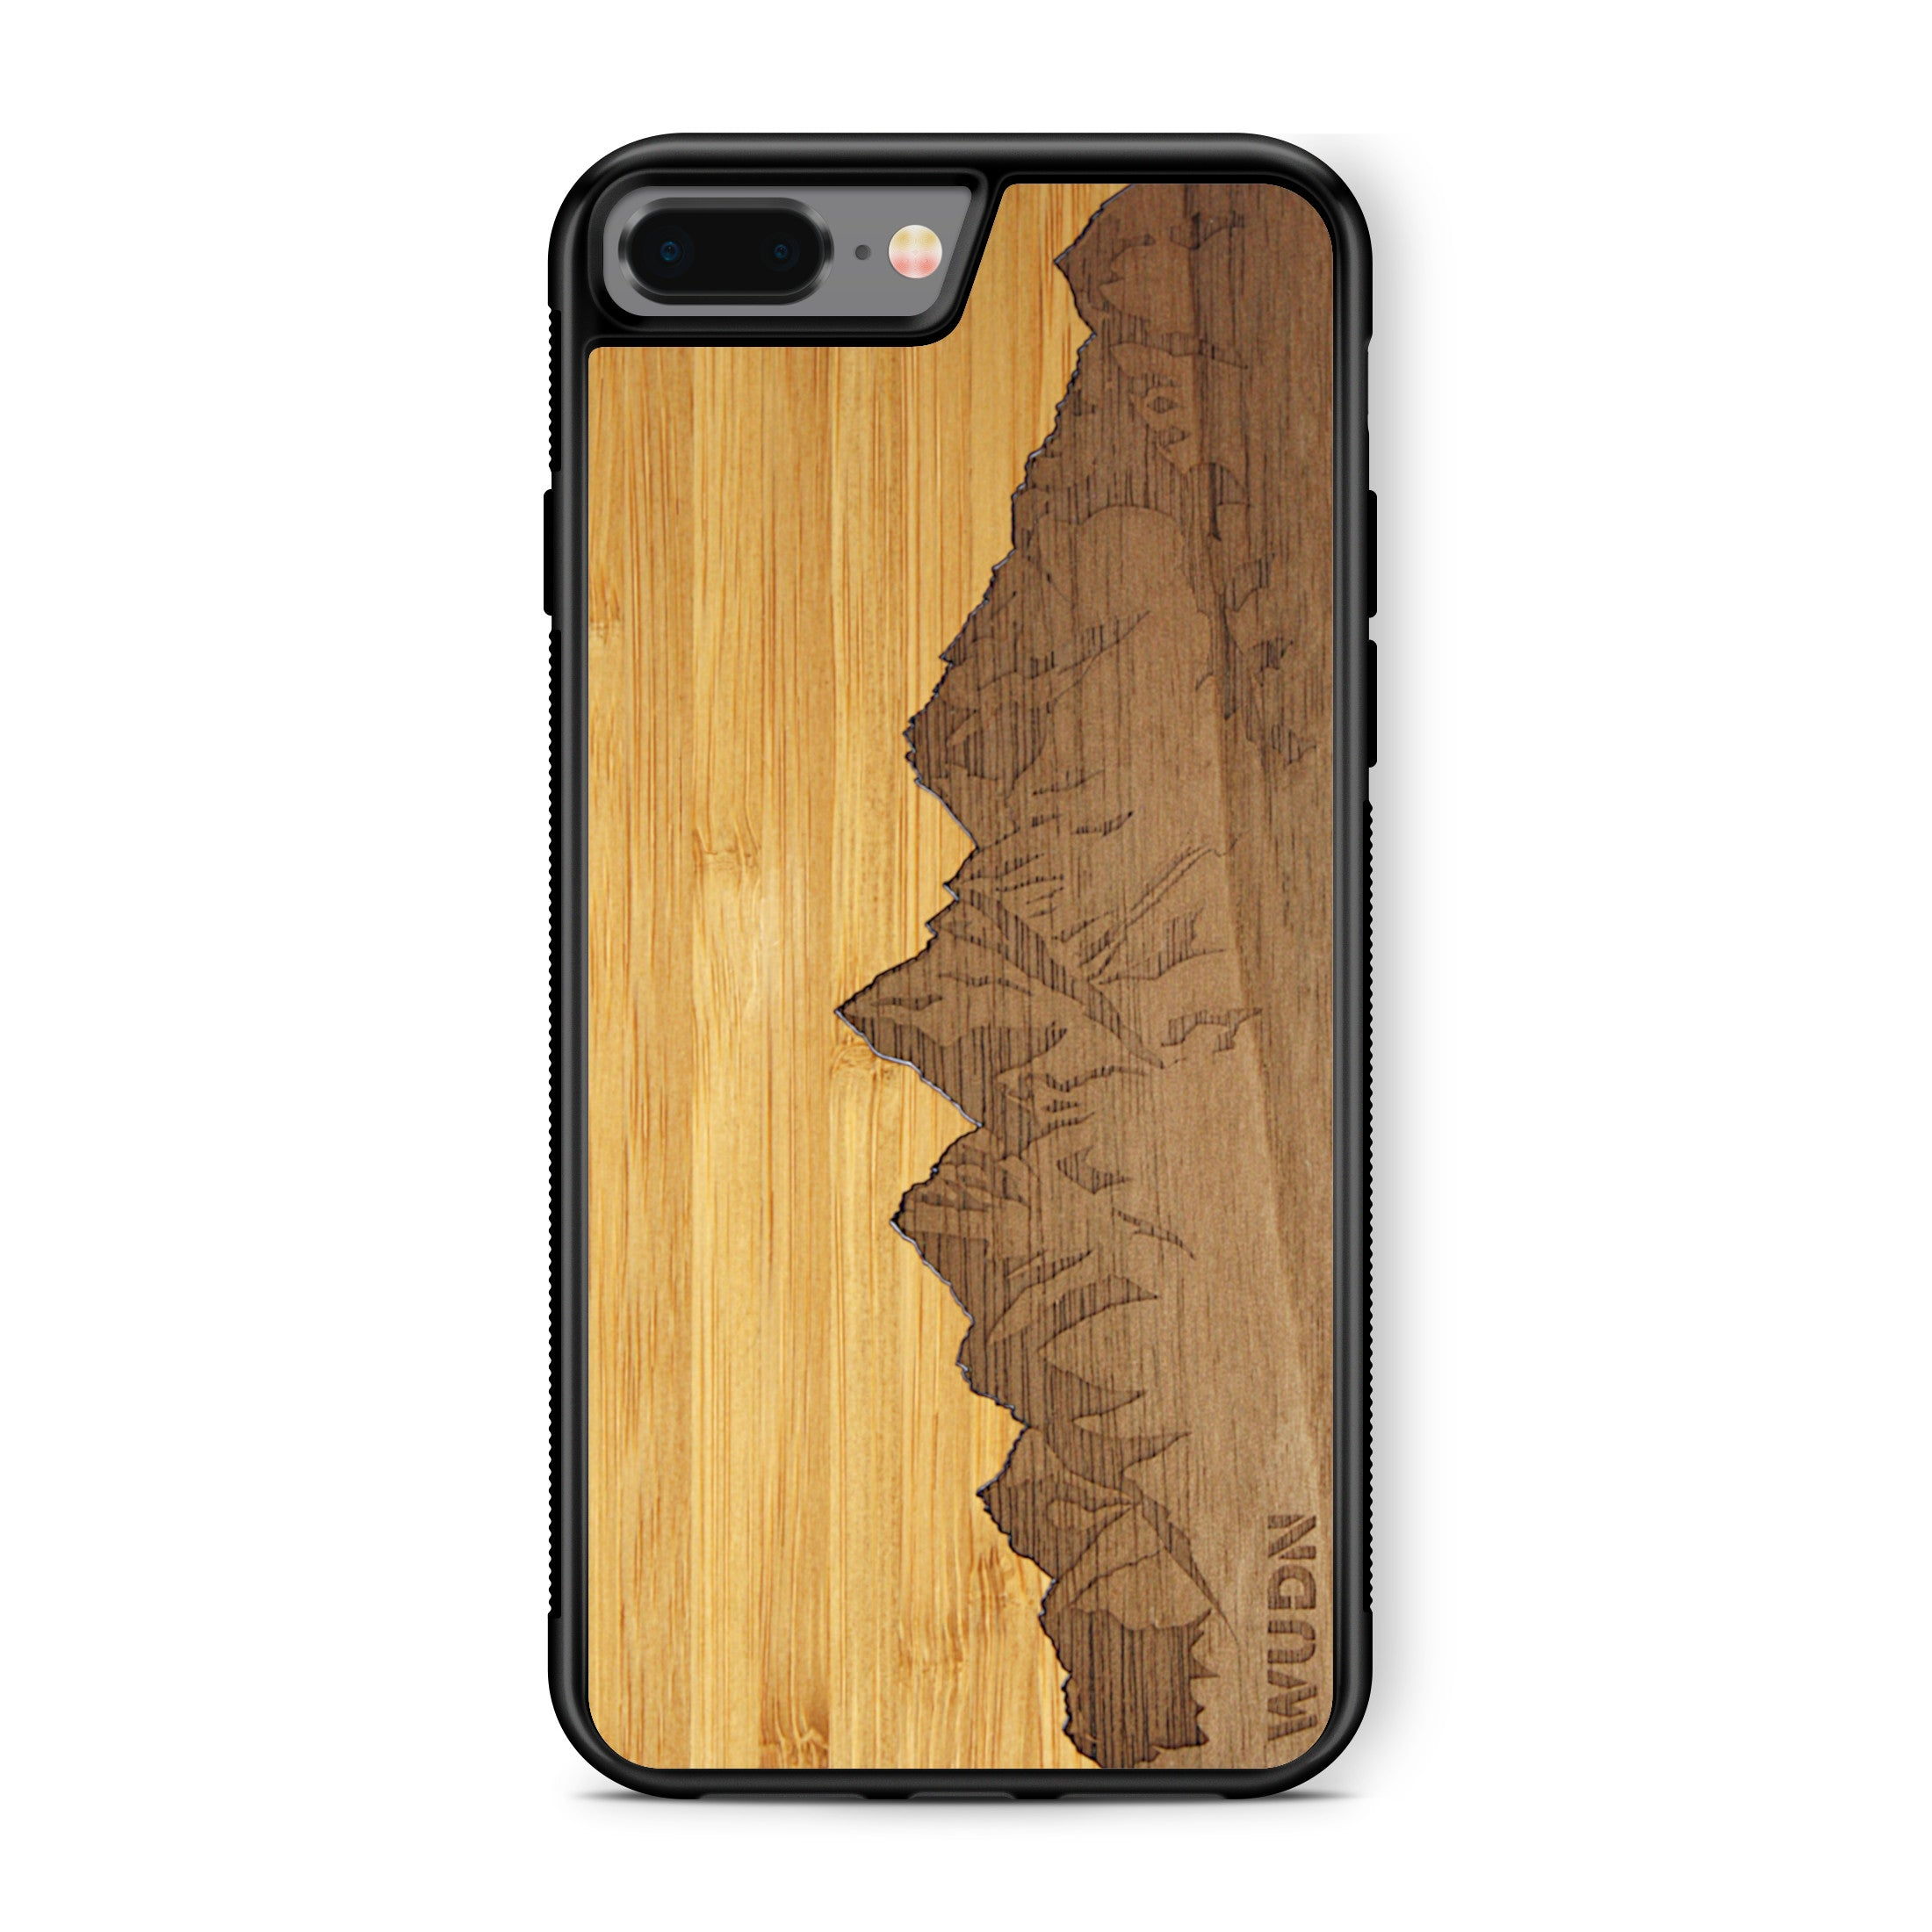 Slim Wooden Phone Case | Sawtooth Mountains Traveler, Cases by WUDN for iPhone 7 Plus / 8 Plus